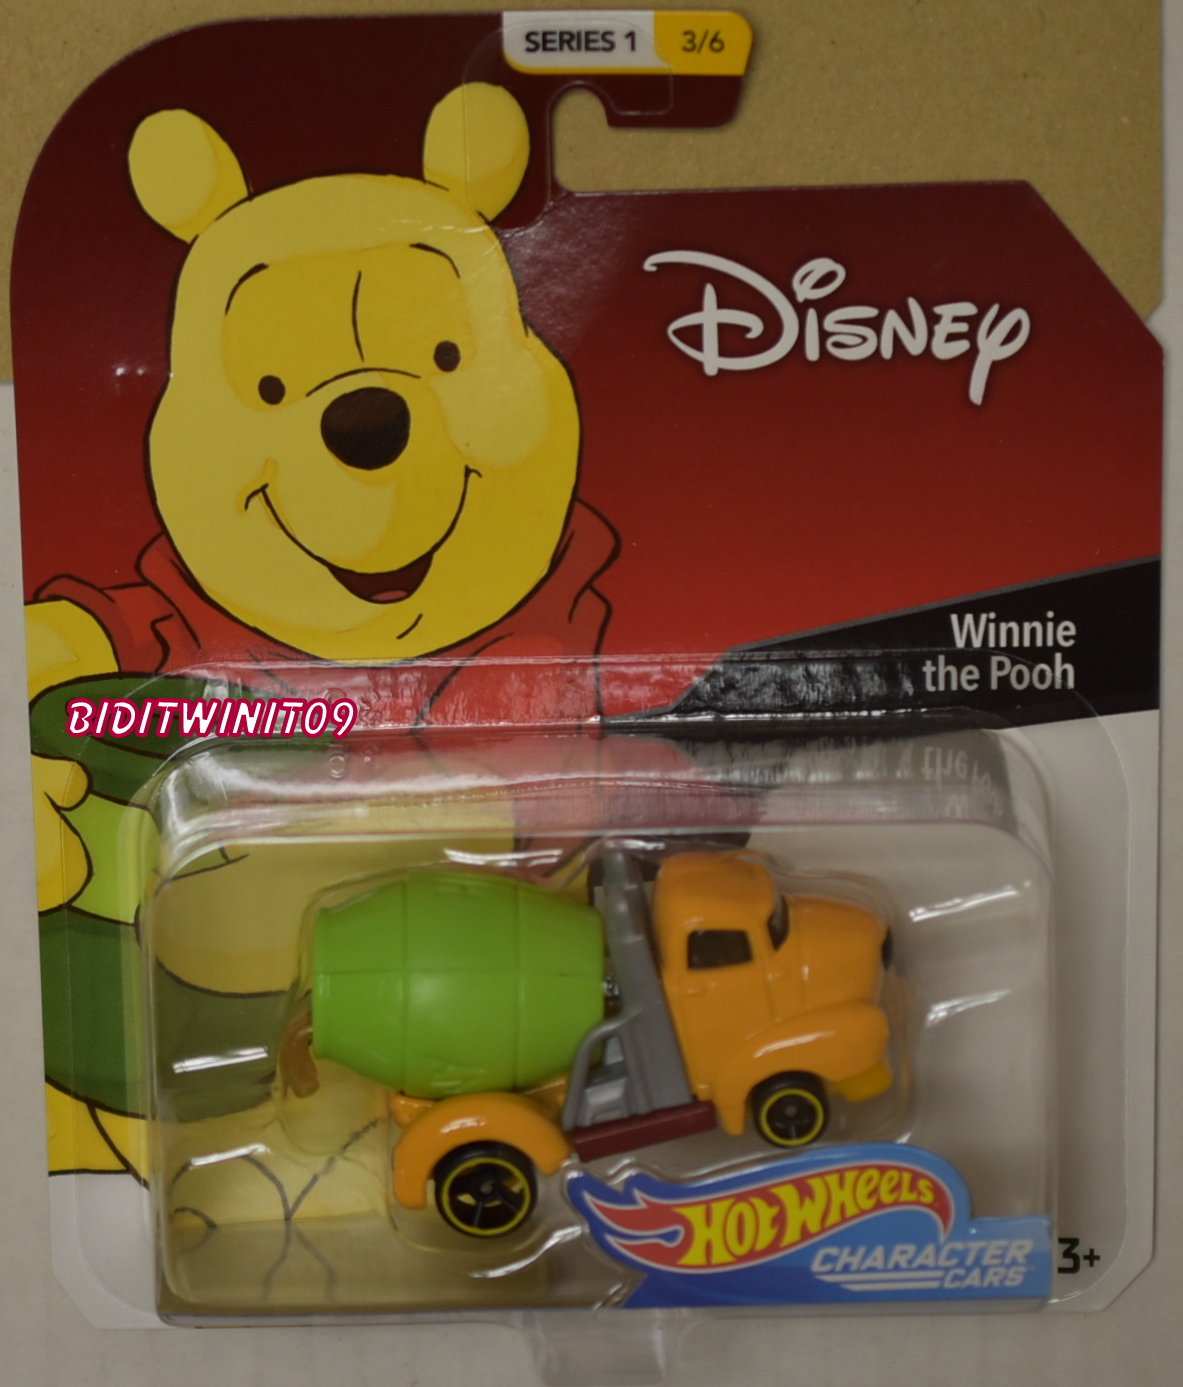 HOT WHEELS DISNEY SERIES 1 WINNIE THE POOH #3/6 CHARACTER CARS